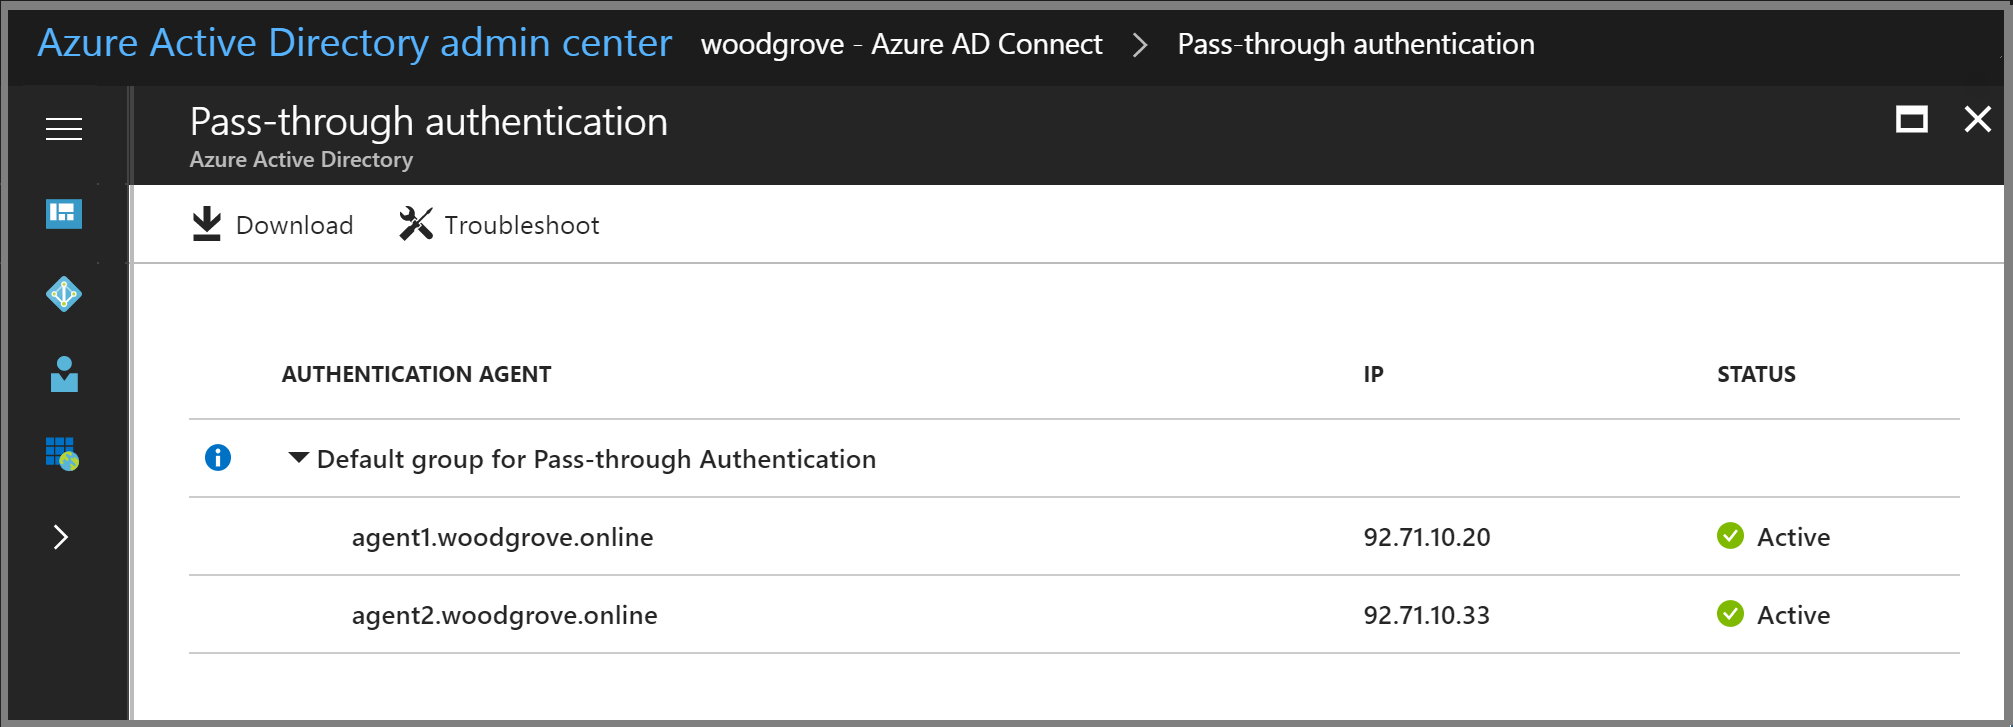 Azure Active Directory admin center: Pass-through Authentication pane